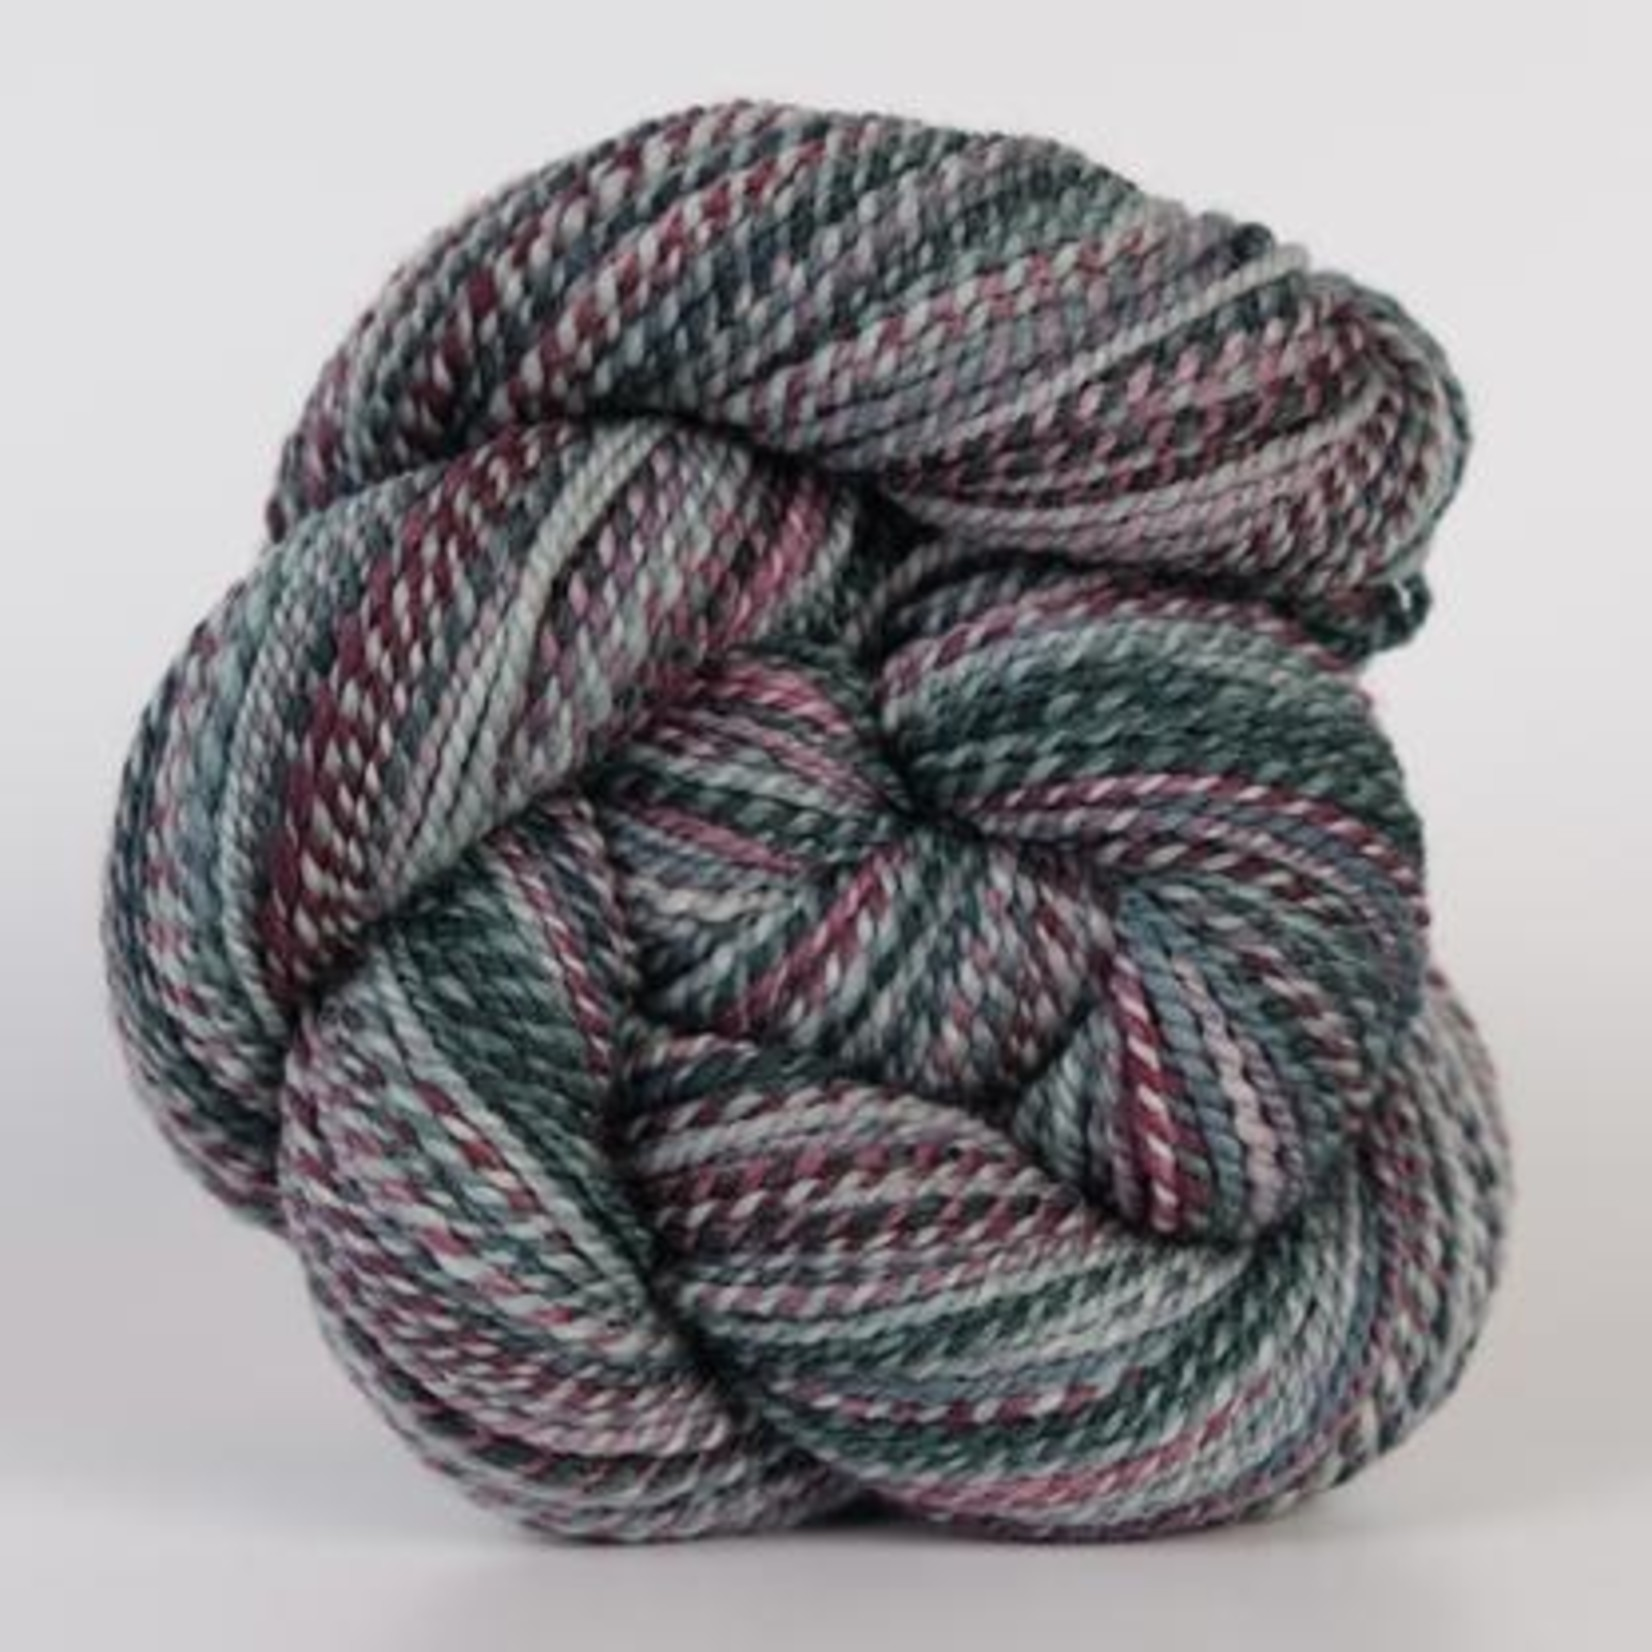 Spincycle Yarn Dyed in the Wool, Dead Reckoning